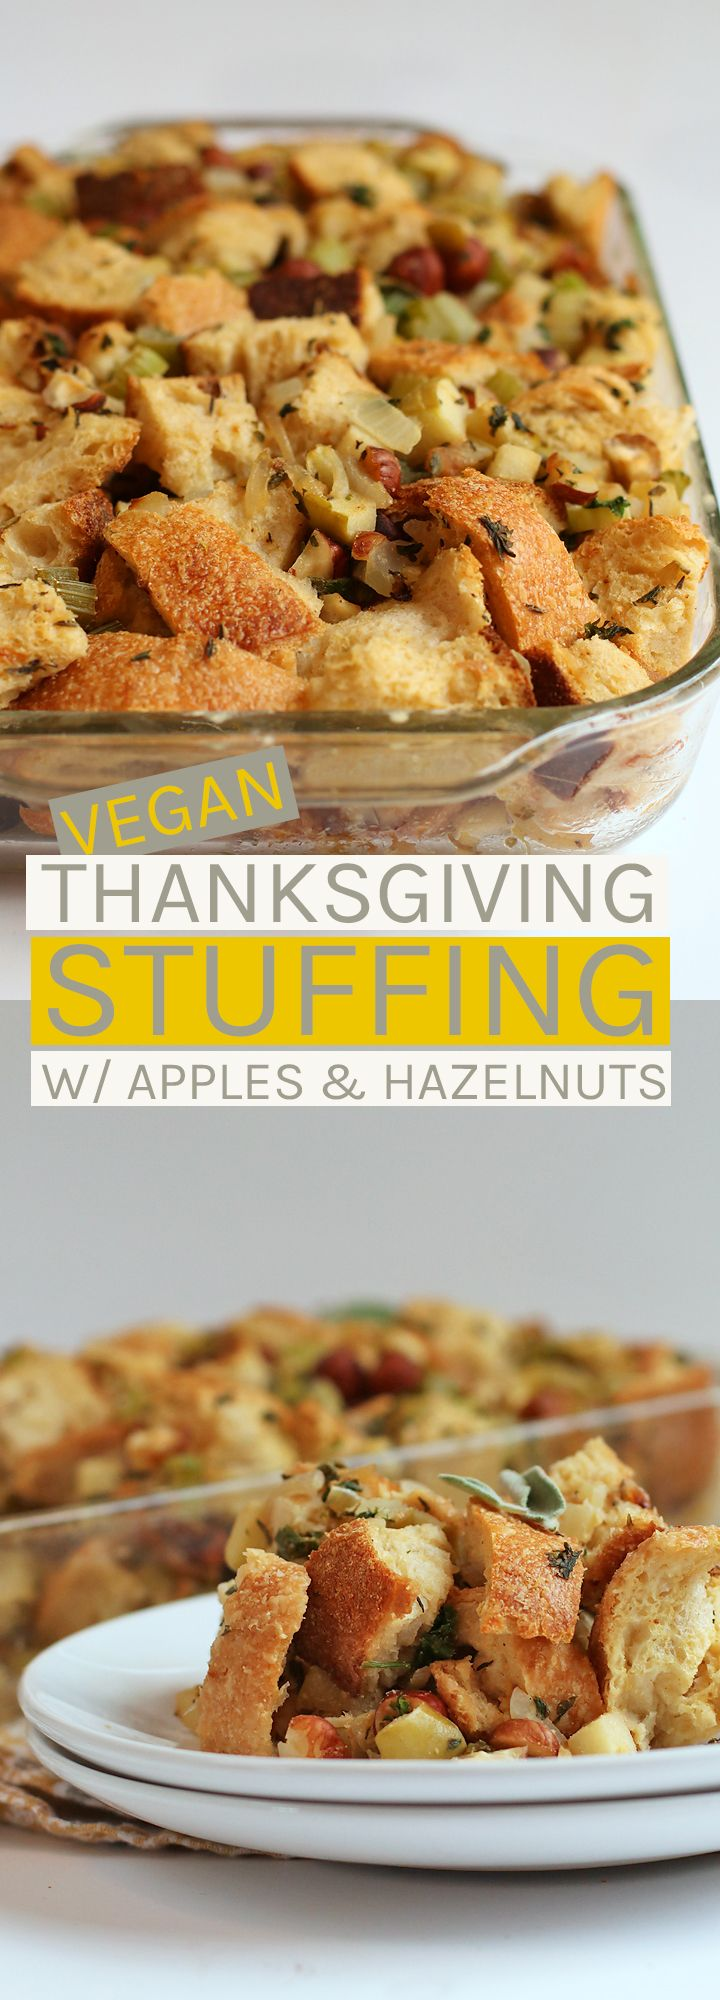 A classic Thanksgiving dish turned vegan. This vegan stuffing is made with apples, hazelnuts, and all the seasonal spices for the perfect side to your holiday table.